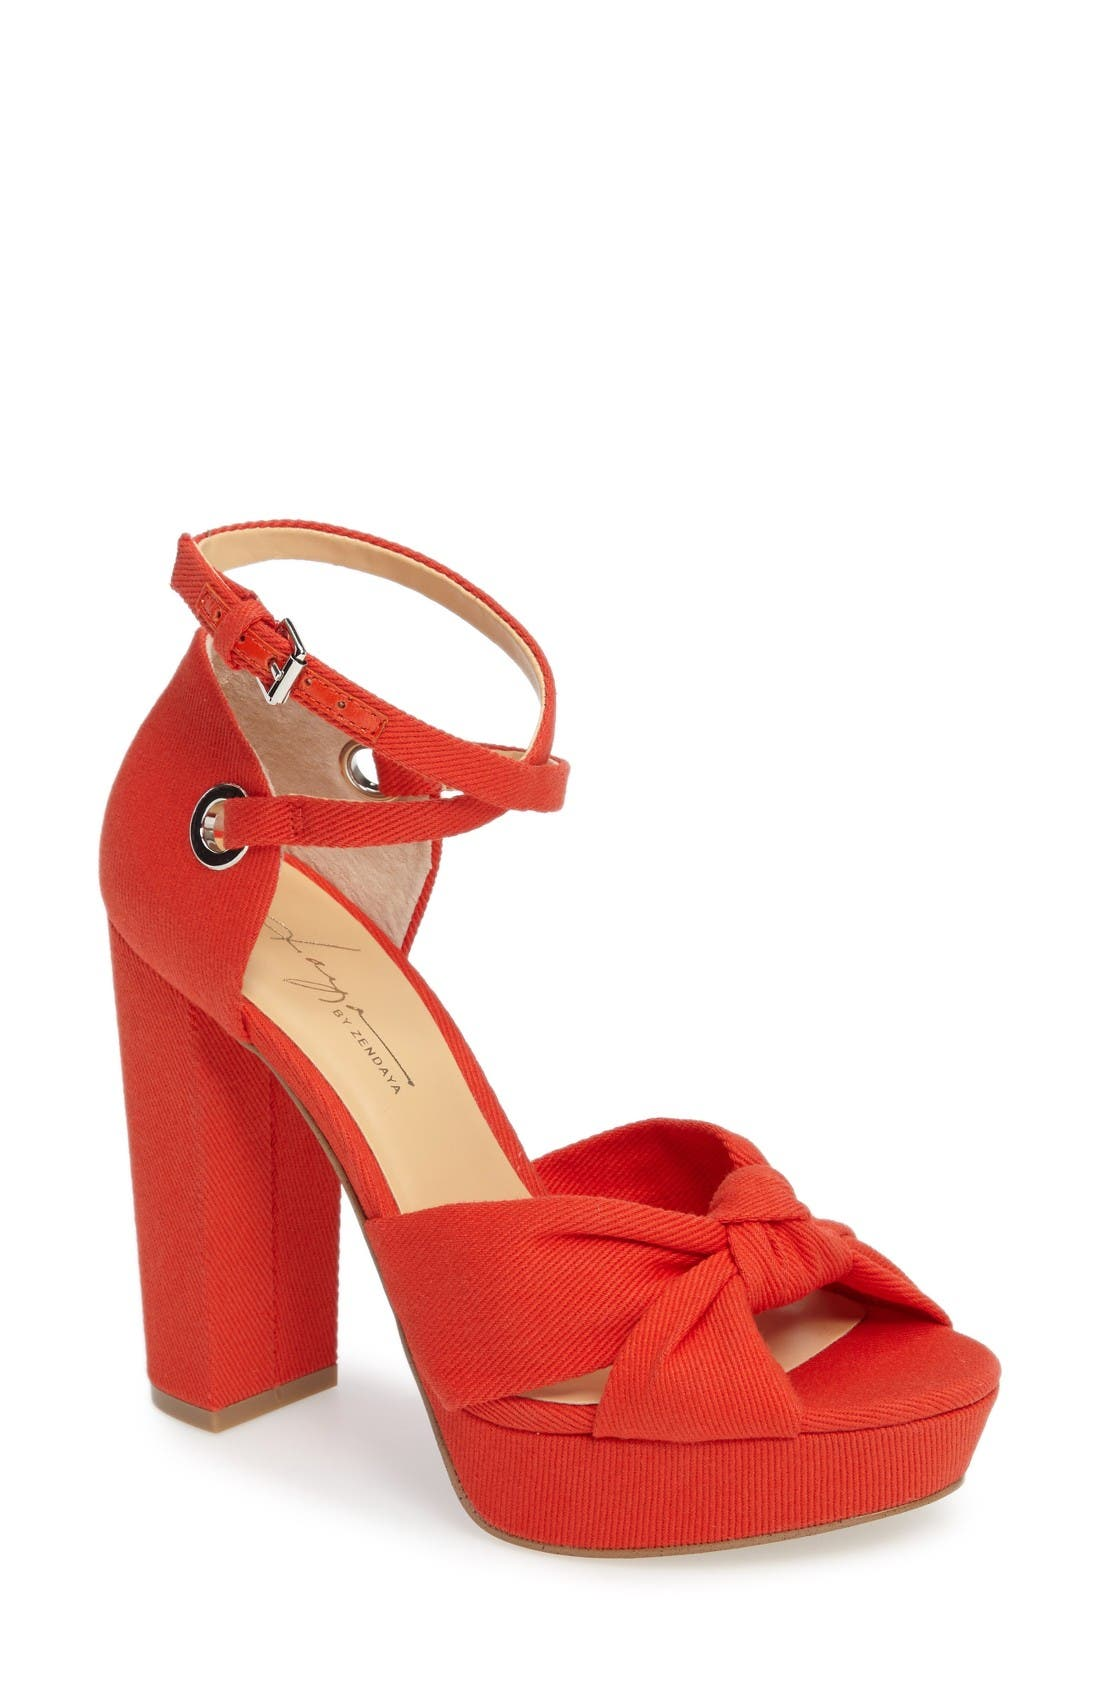 by Zendaya Mission Ankle Wrap Platform Pump